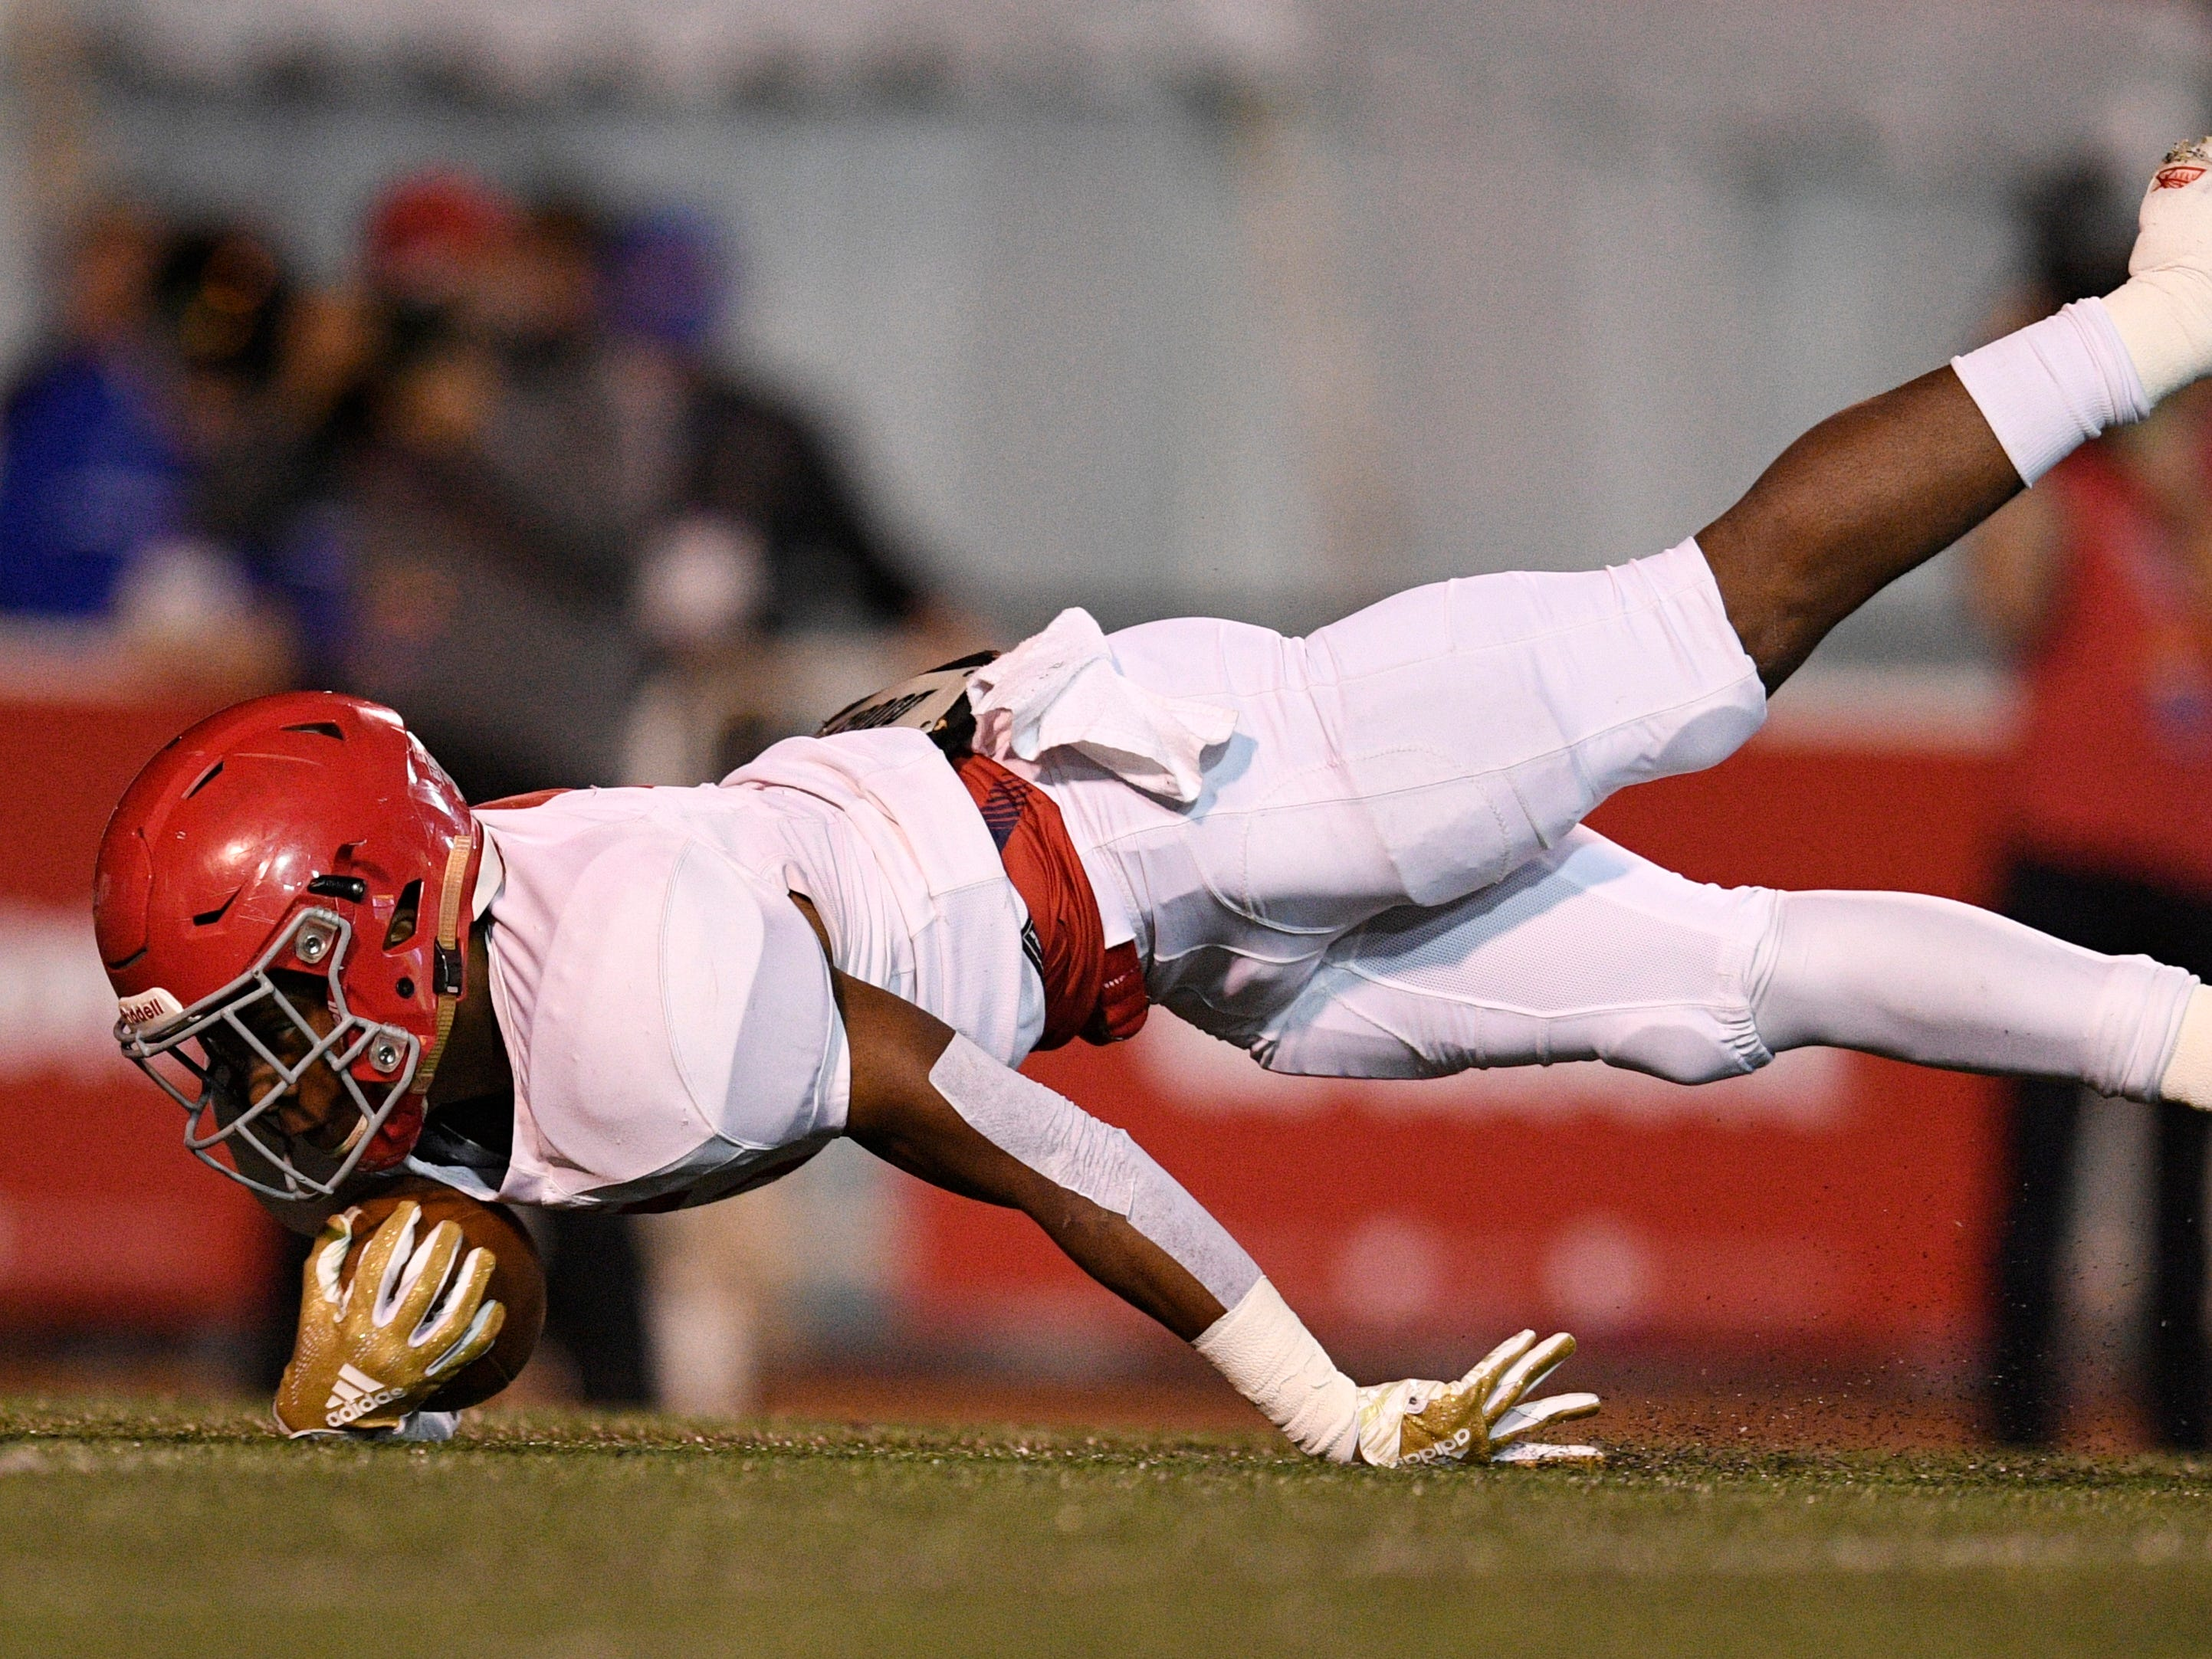 Brentwood Acad. running back Tomario Pleasant (5) is stopped just short of the goal line in the first quarter at the Division II-AAA BlueCross Bowl state championship at Tennessee Tech's Tucker Stadium in Cookeville, Tenn., on Friday, Nov. 30, 2018.